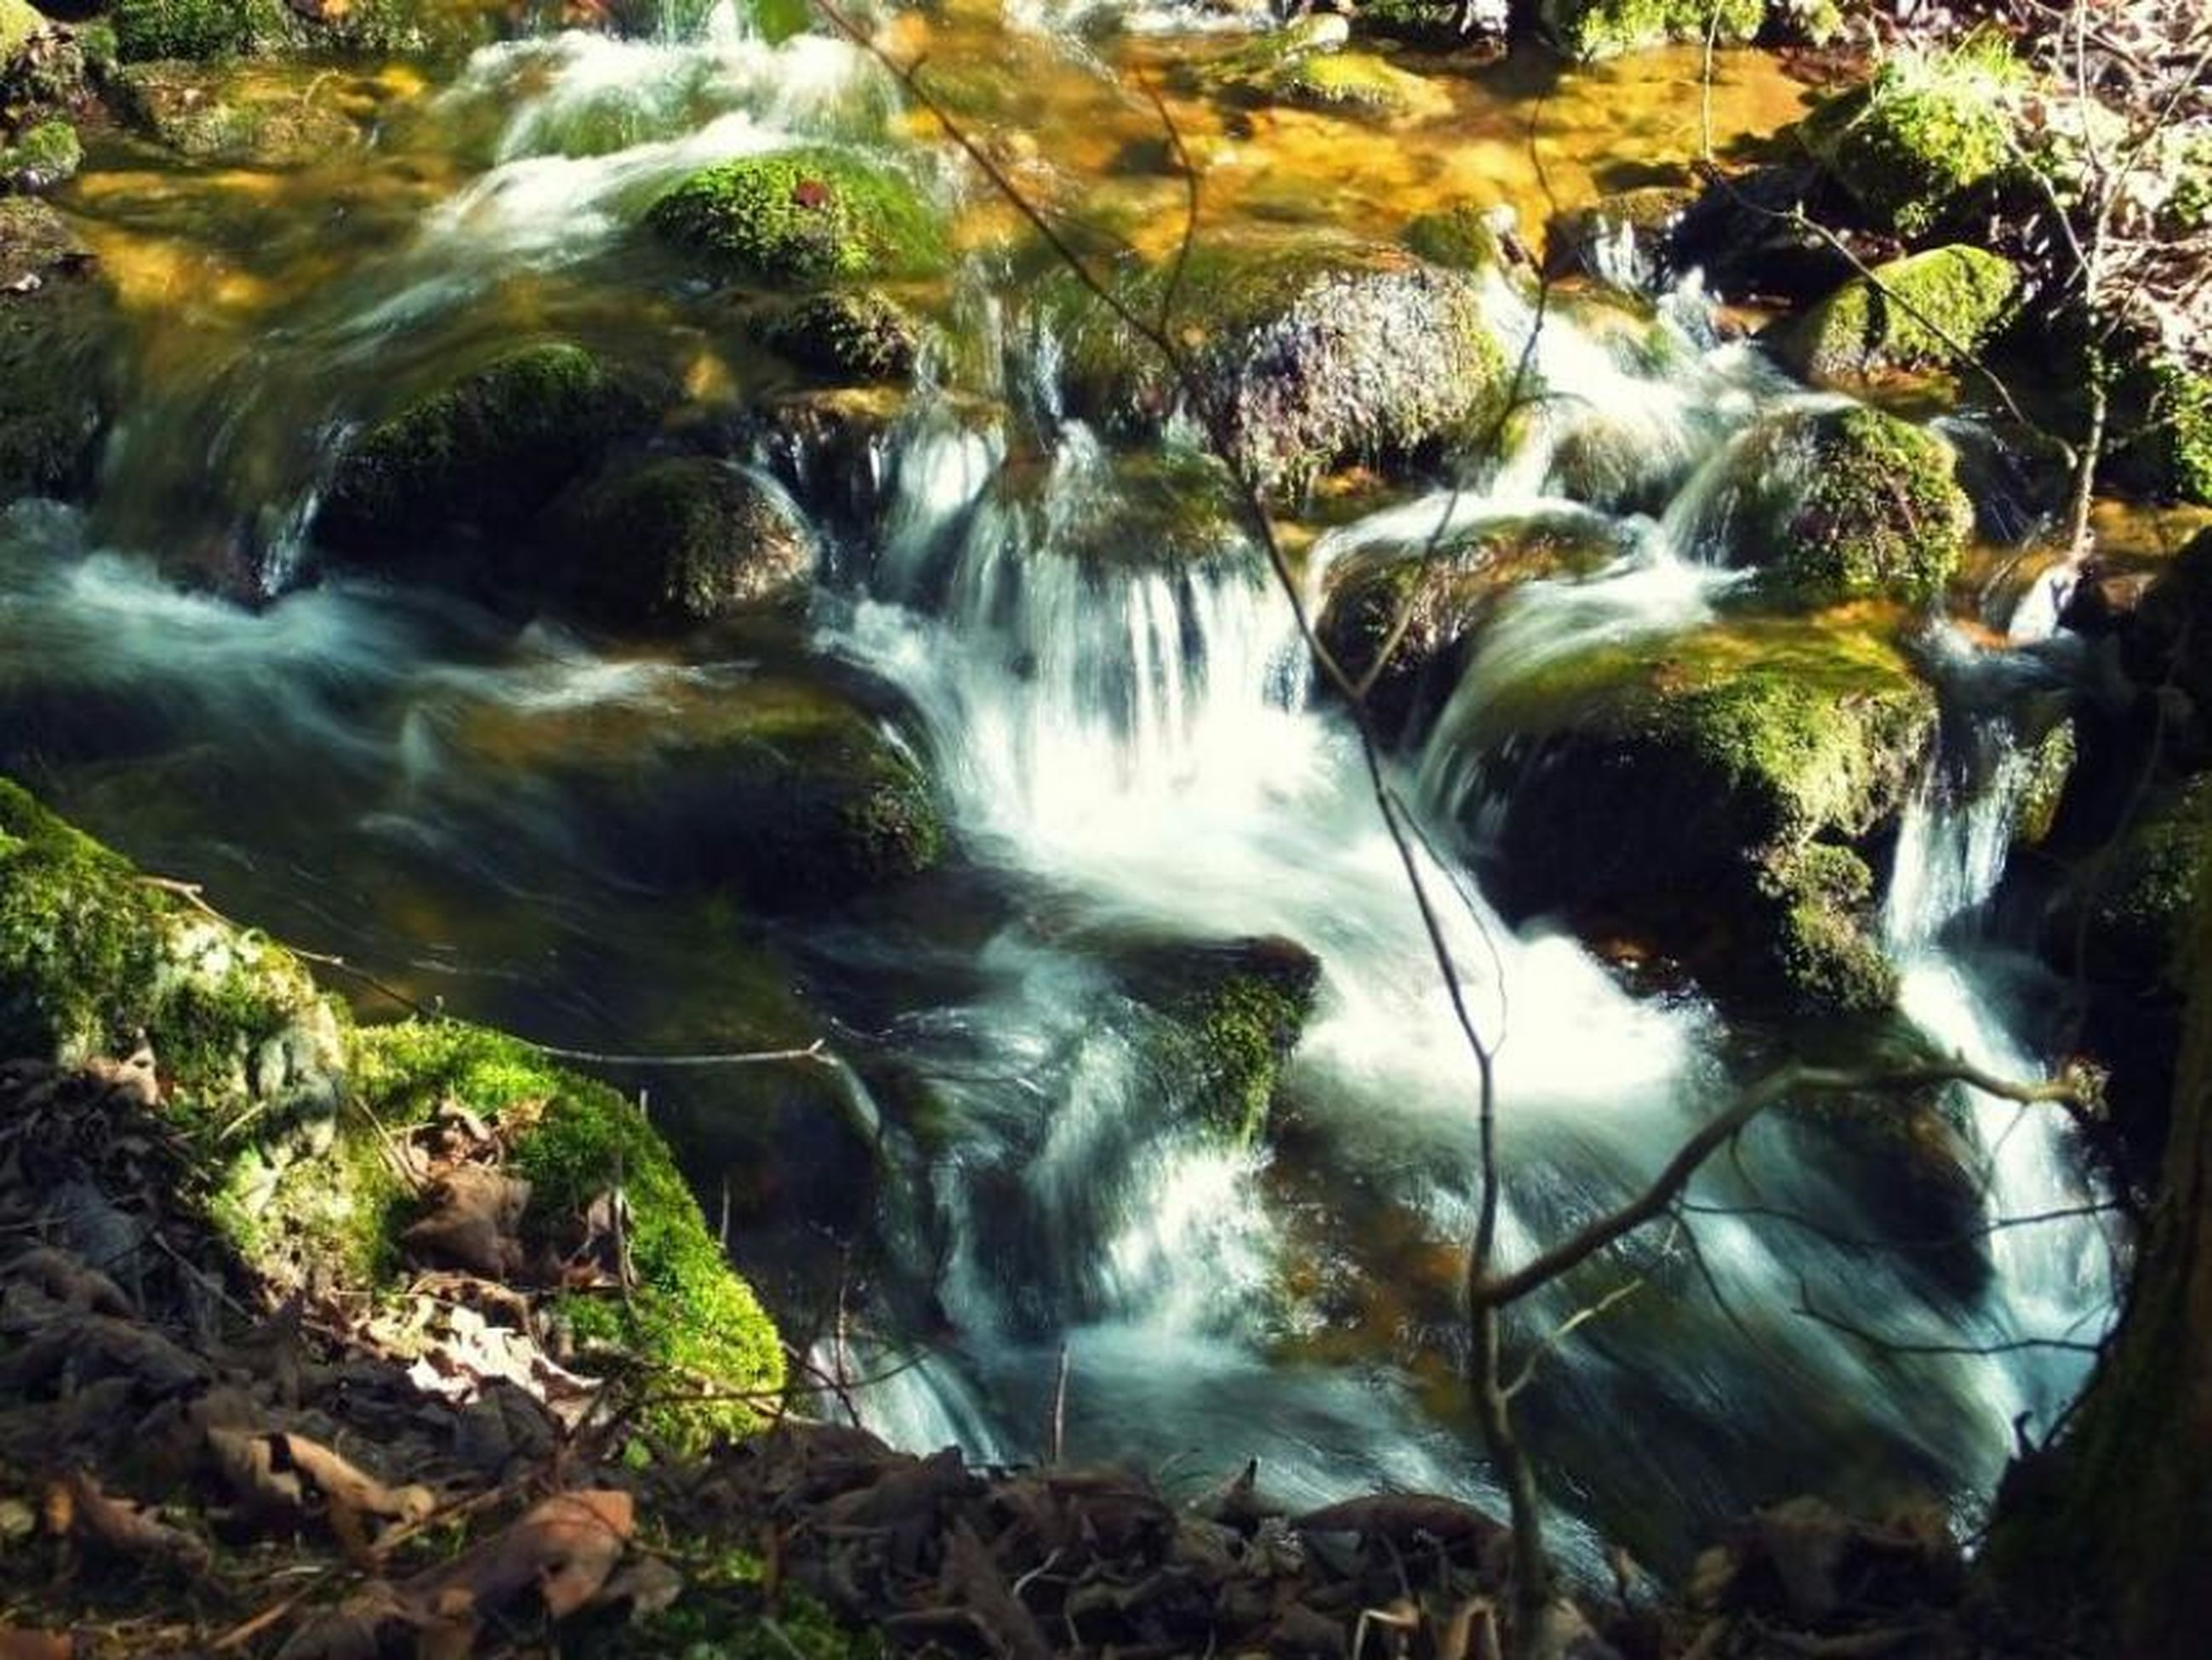 water, flowing water, waterfall, flowing, rock - object, motion, nature, beauty in nature, stream, forest, scenics, long exposure, tranquility, tranquil scene, river, plant, day, moss, high angle view, idyllic